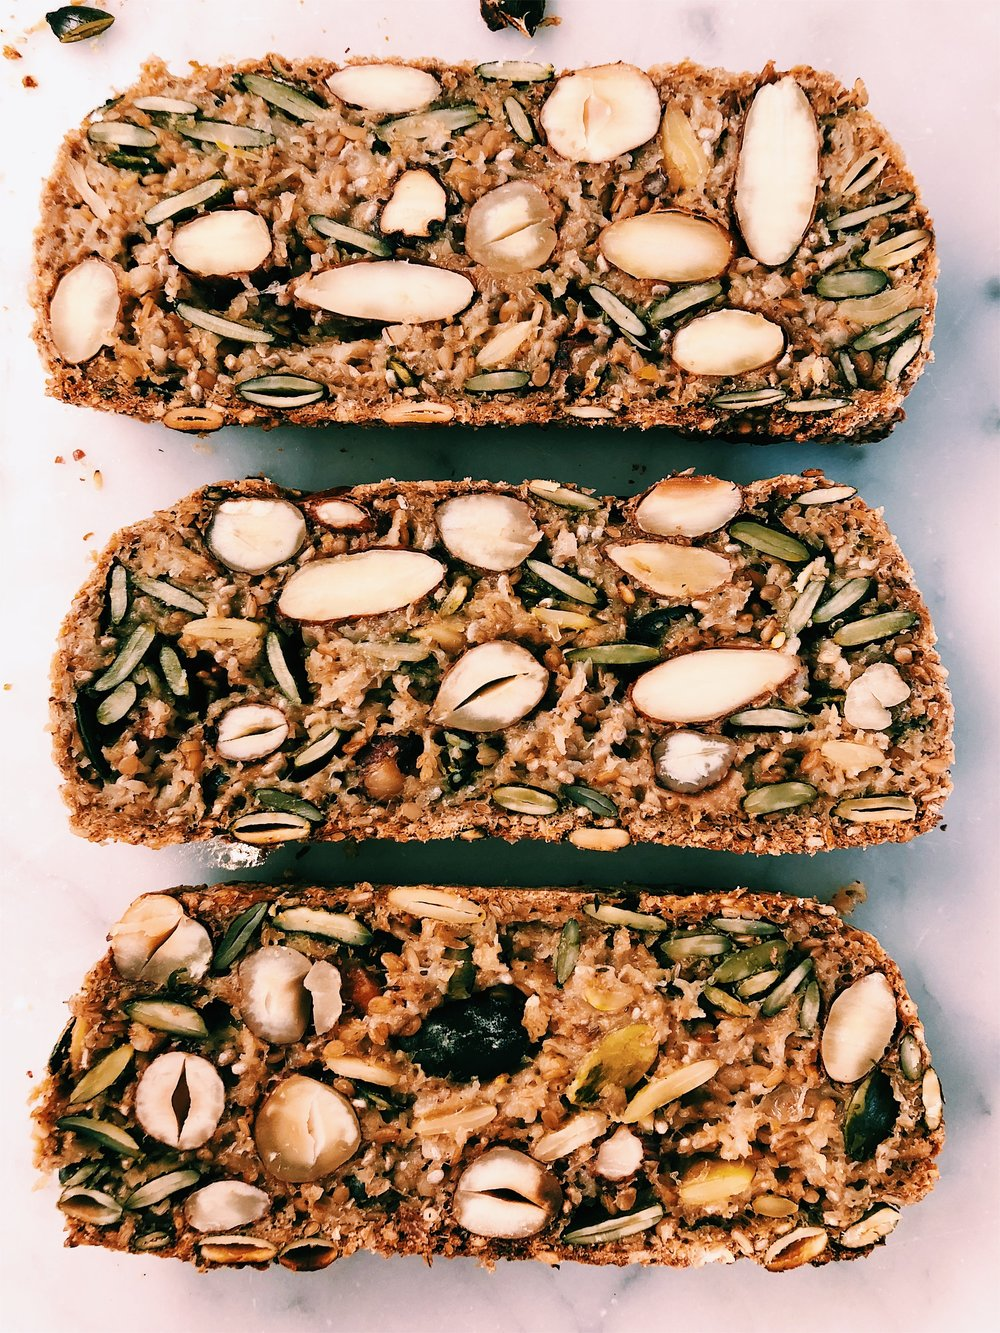 SEED + NUT BREAD - INGREDIENTS1 1/2 cups gluten free rolled oats1 cup pumpkin seeds (or sunflower seeds)1/3 cup almonds1/2 cup hazelnuts1/3 cup sesame seeds1 tsp salt2 1/2 tsp chia seeds3 tb psyllium husks1/4 cup ground flaxseed meal2 tb maple syrup3 tb melted coconut oil (or ghee)1.5 cups warm water